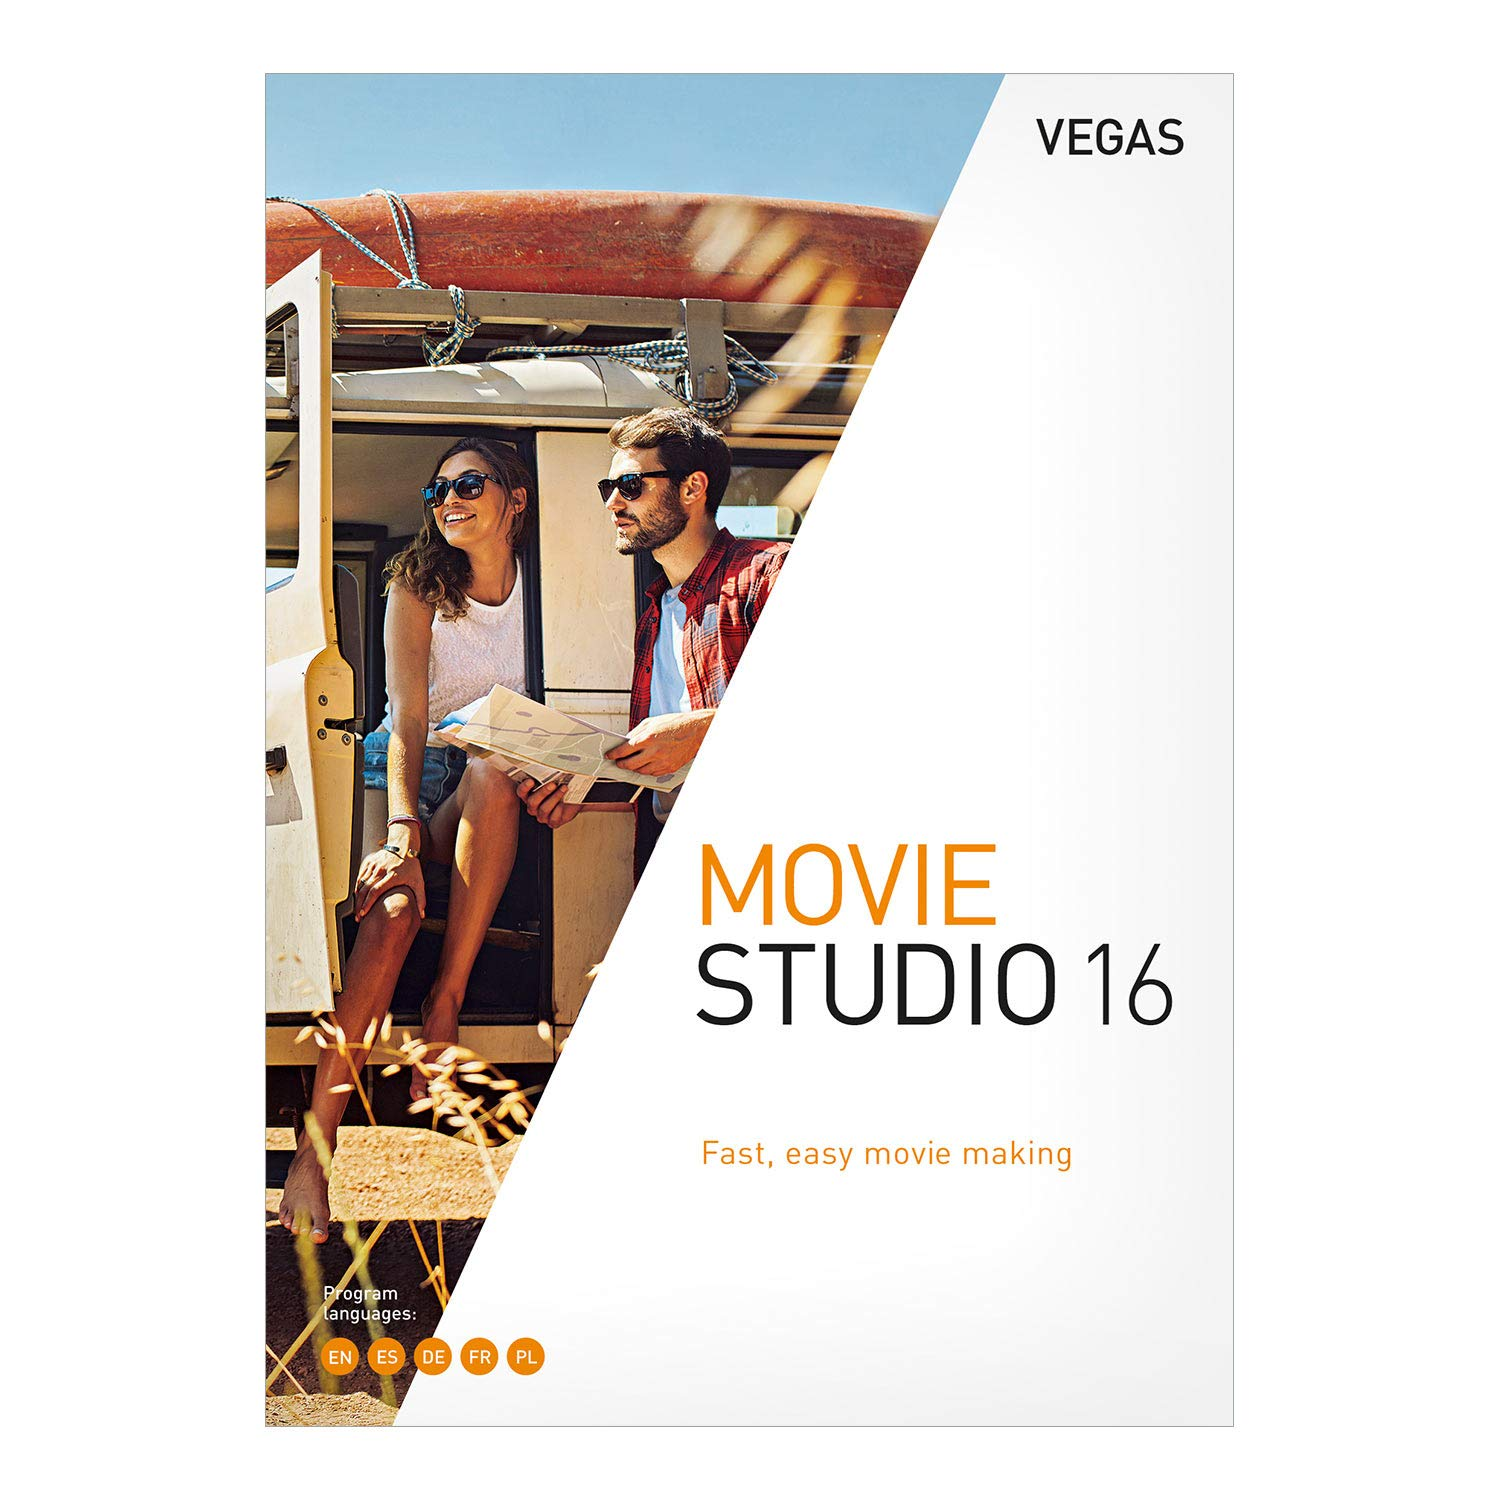 VEGAS Movie Studio 16 [PC Download] by VEGAS